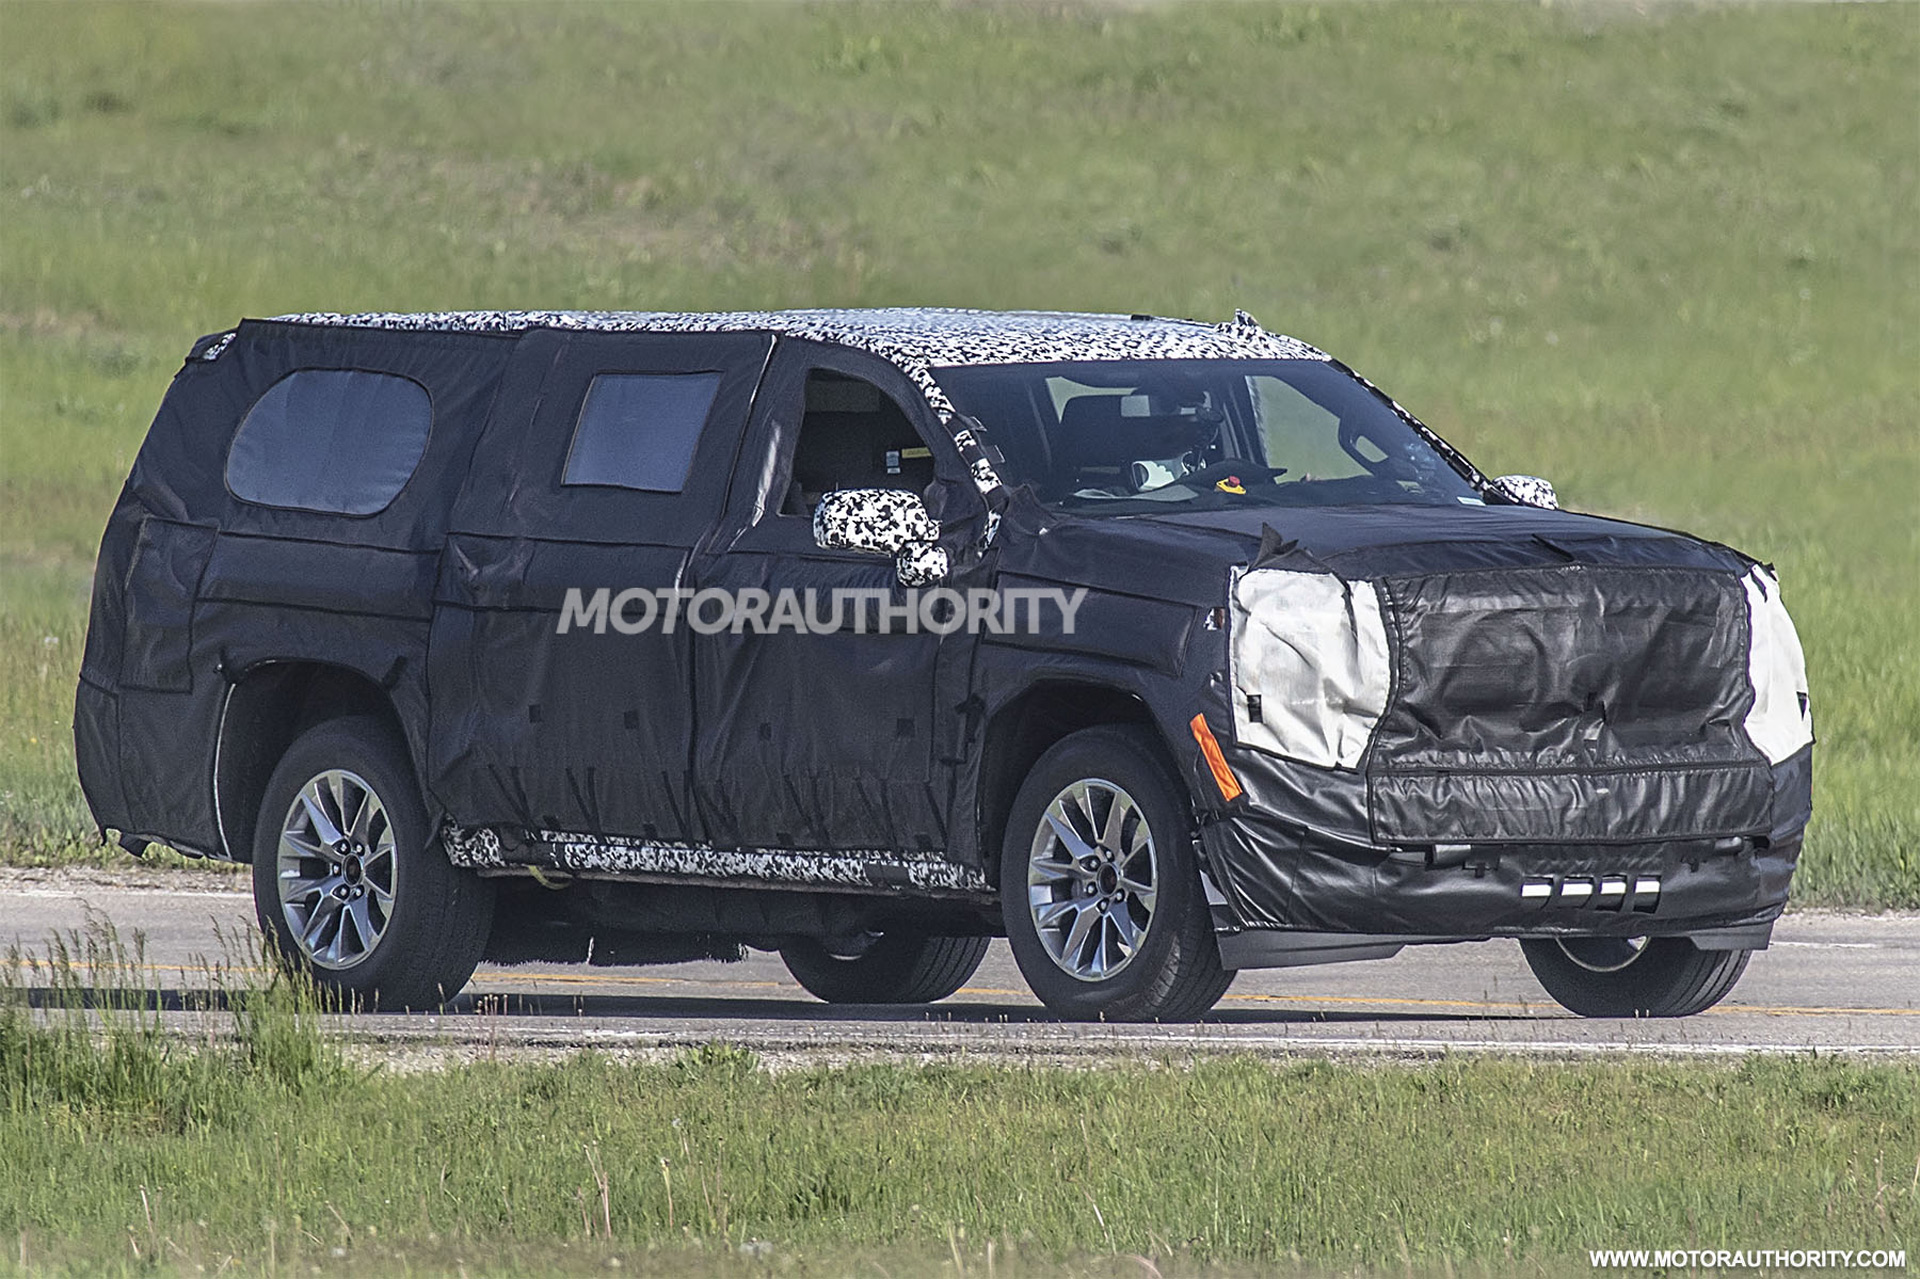 56 All New 2020 Chevrolet Suburban Style